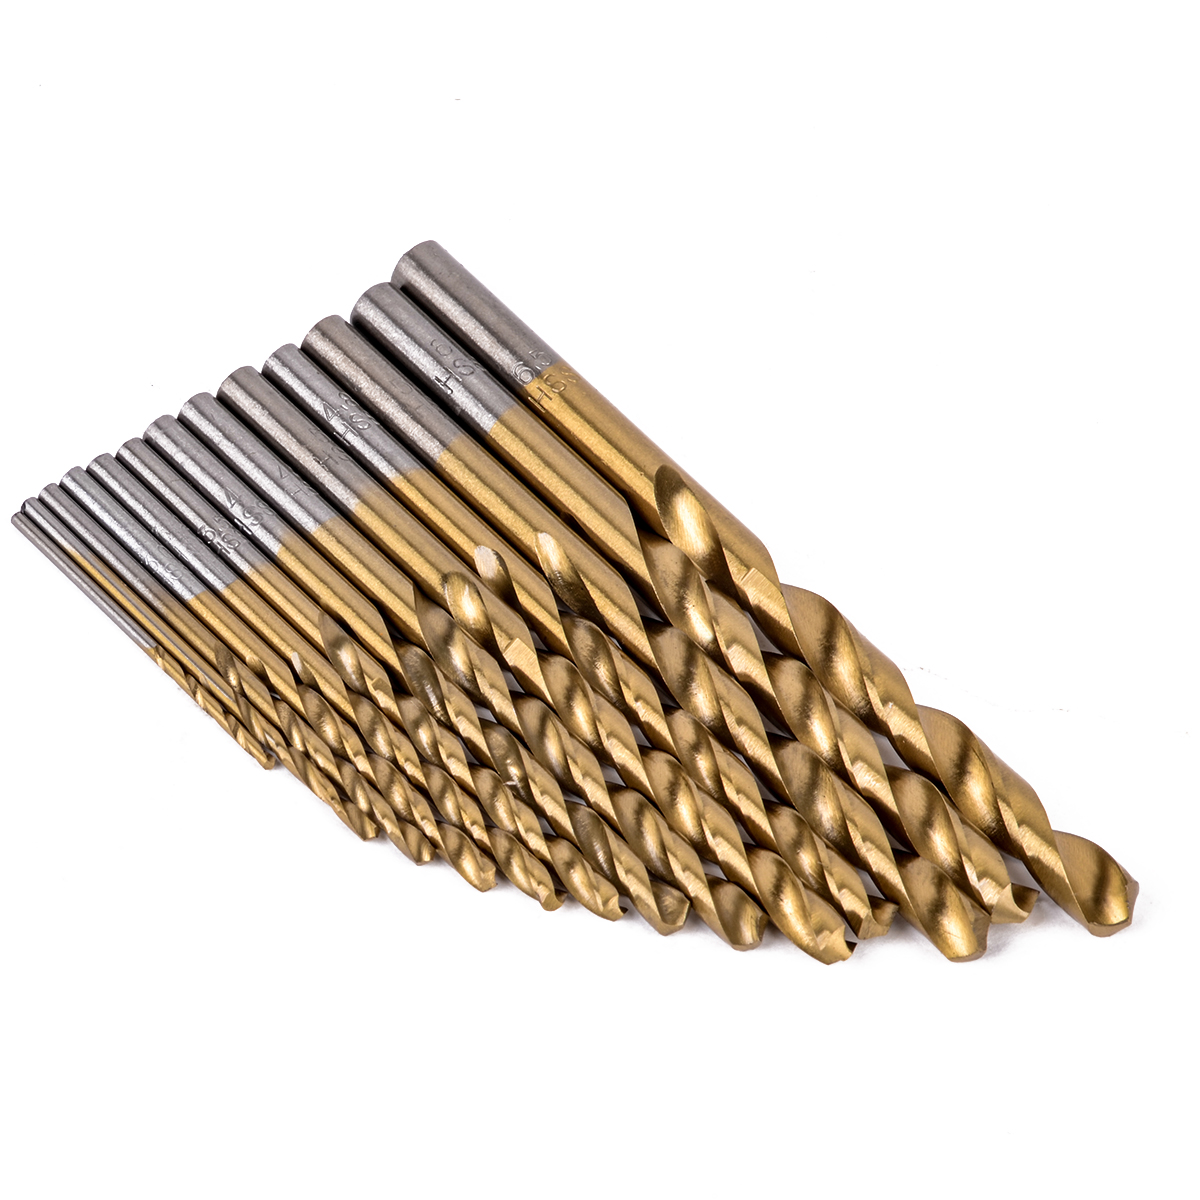 13pcs High Speed Steel HSS Drill Bits Set Titanium Coated Woodworking Tools 1.5-6.5mm Mayitr